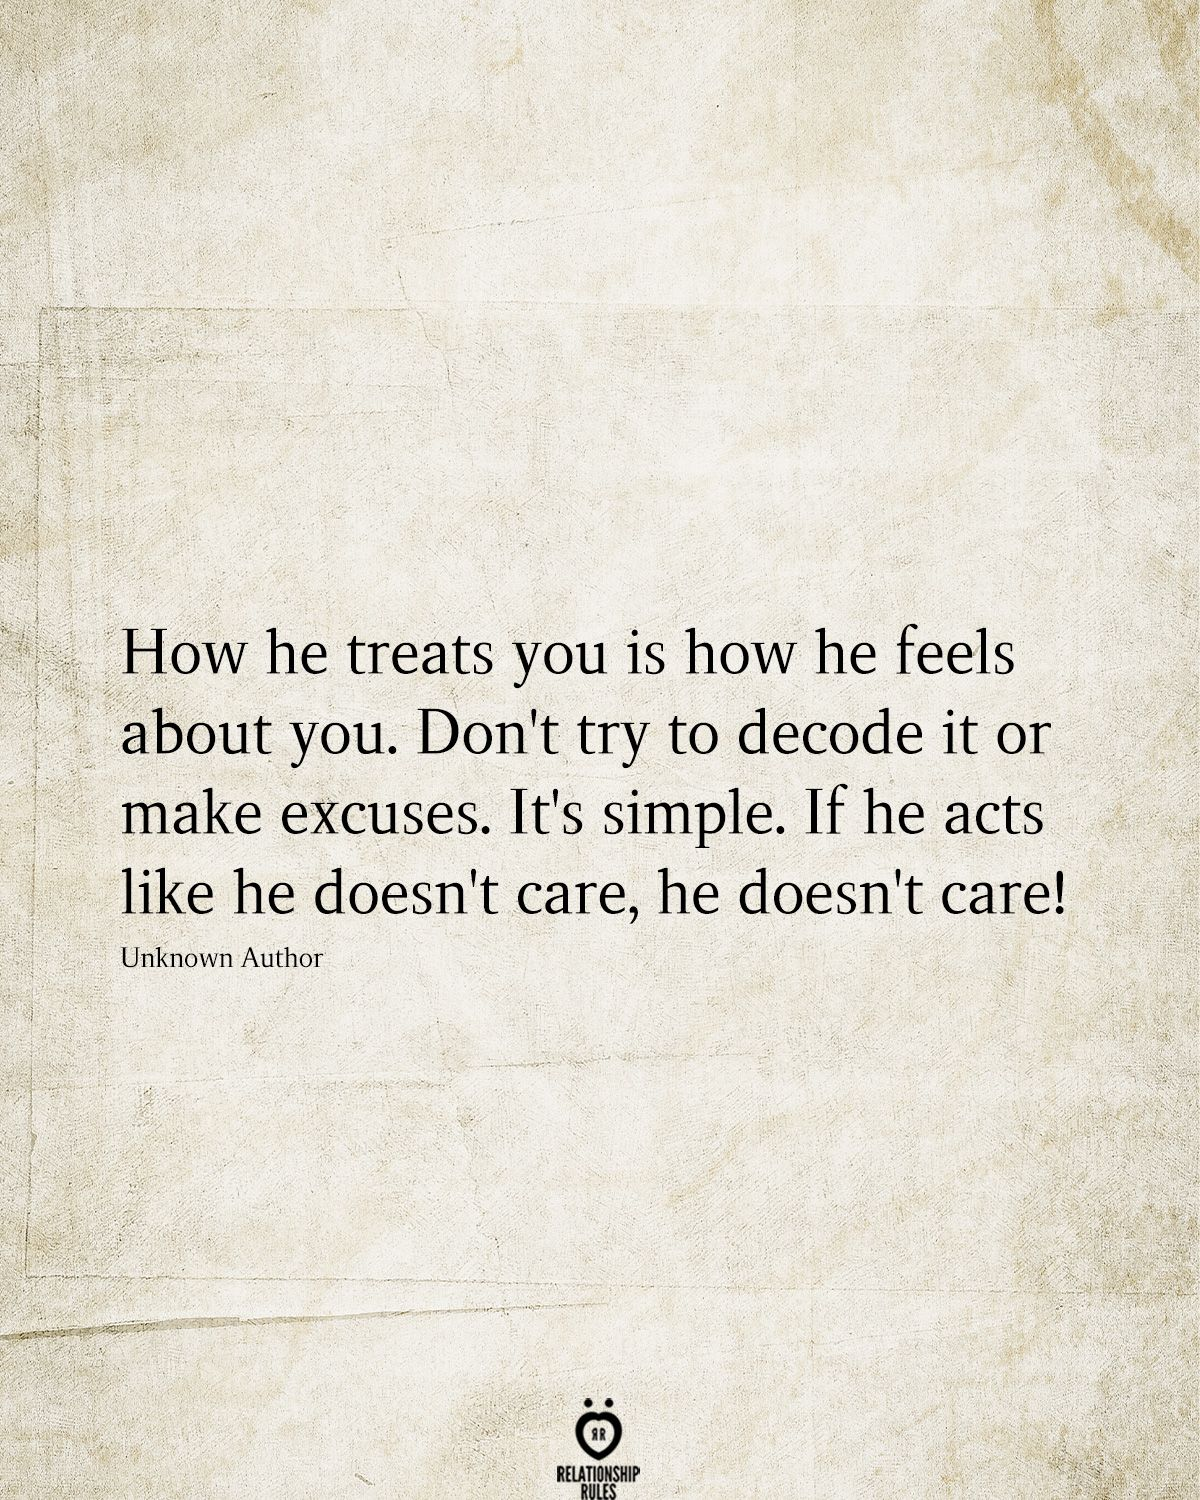 How He Treats You Is How He Feels About You. Don't Try To Decode It Or Make Excuses